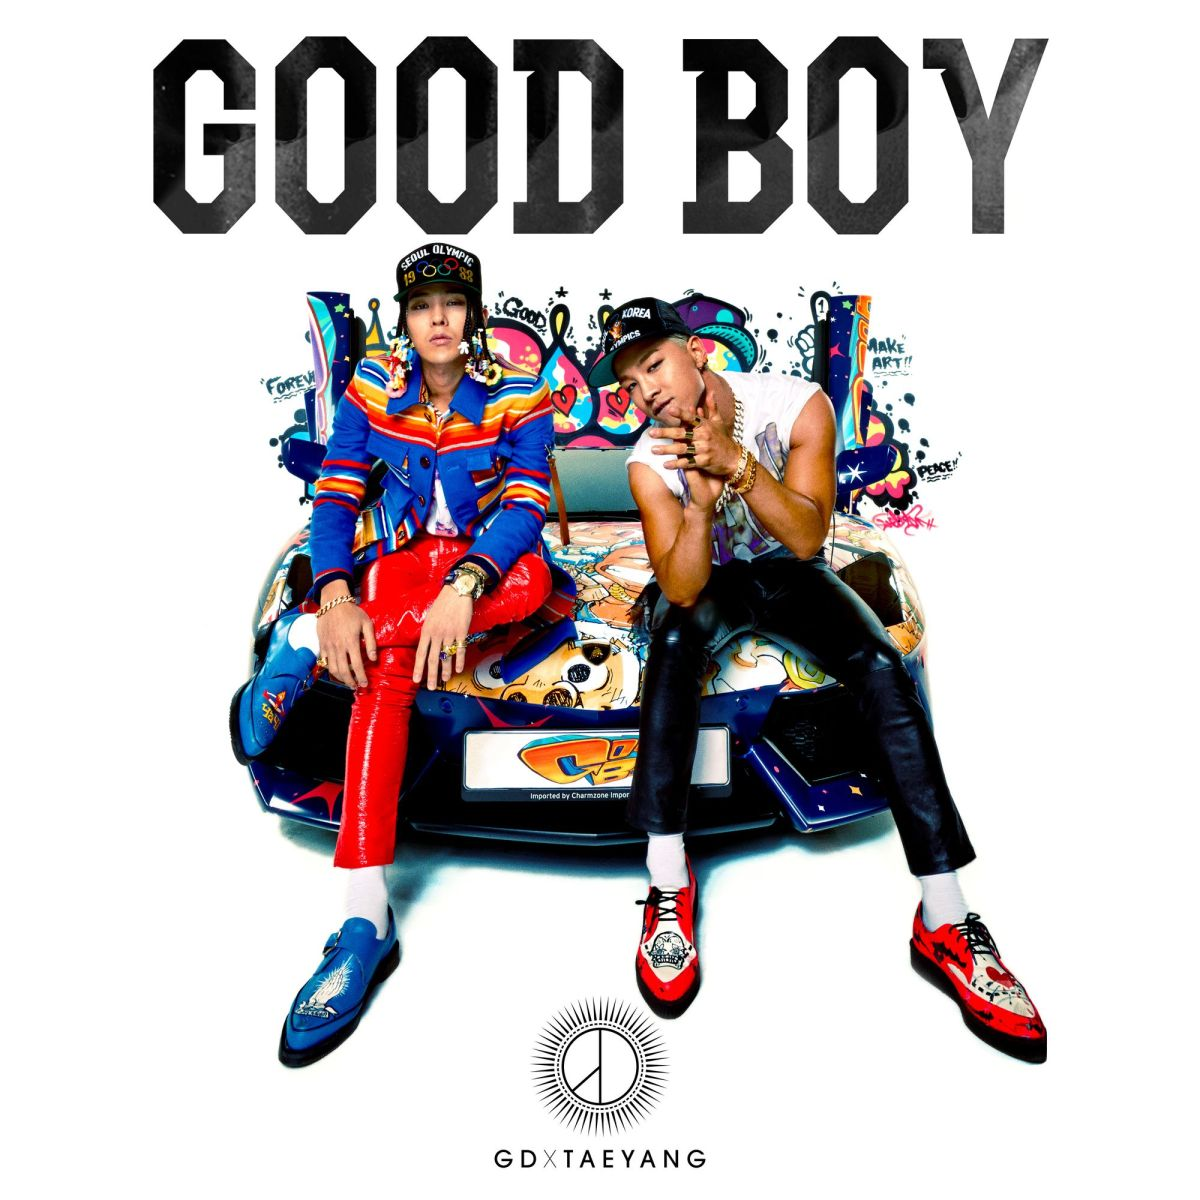 GD X TAEYANG - GOOD BOY - Hangul & Romanization Lyrics